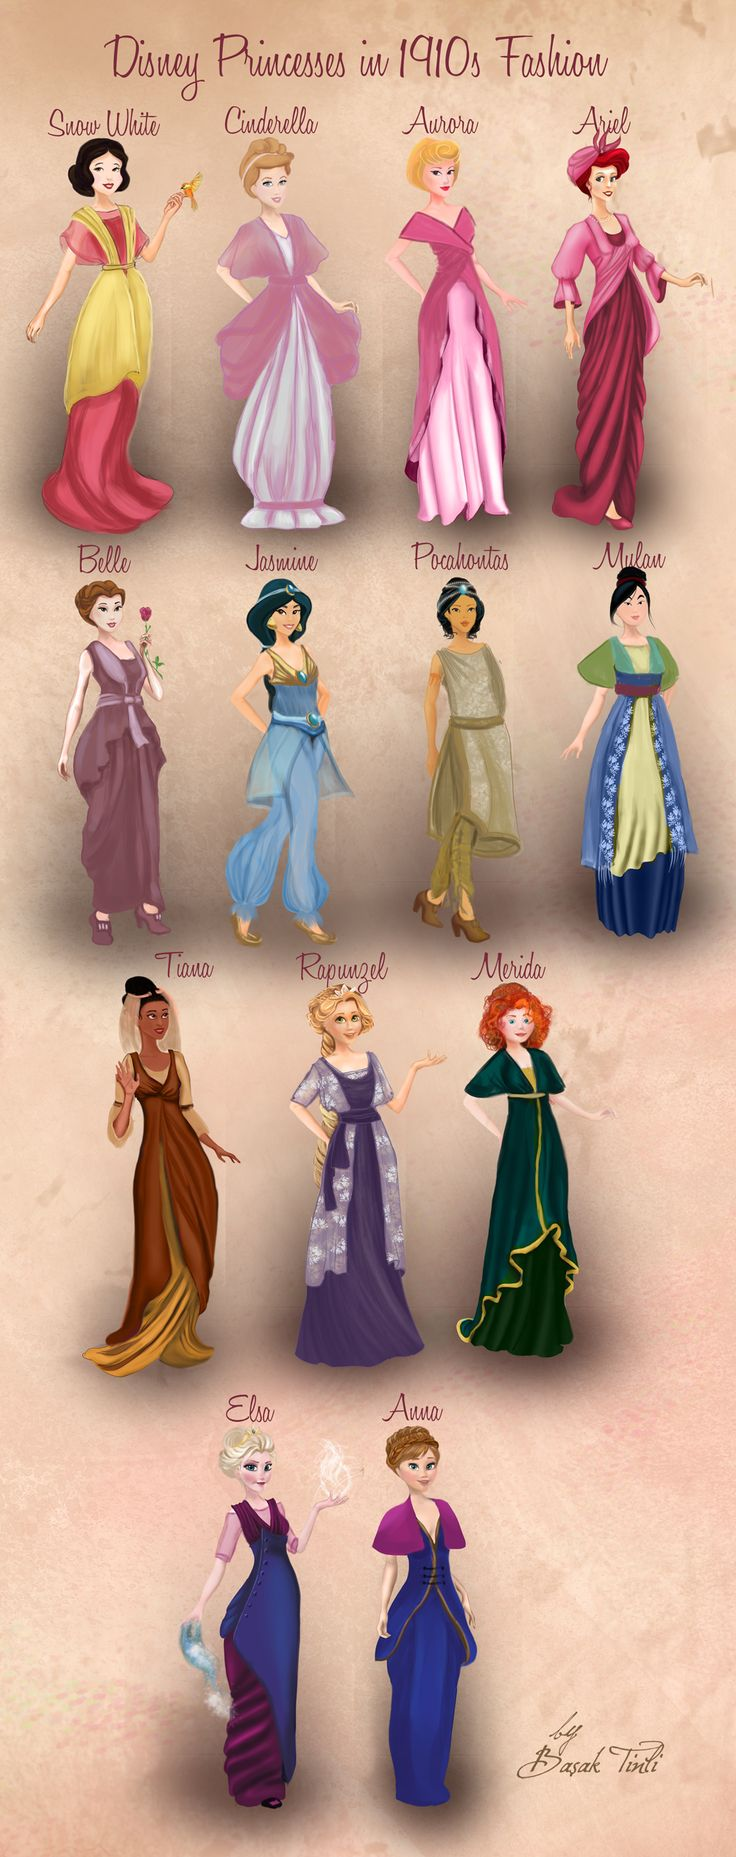 Disney Princesses in 1910s Fashion by Basak Tinli by BasakTinli.deviantart.com on @DeviantArt